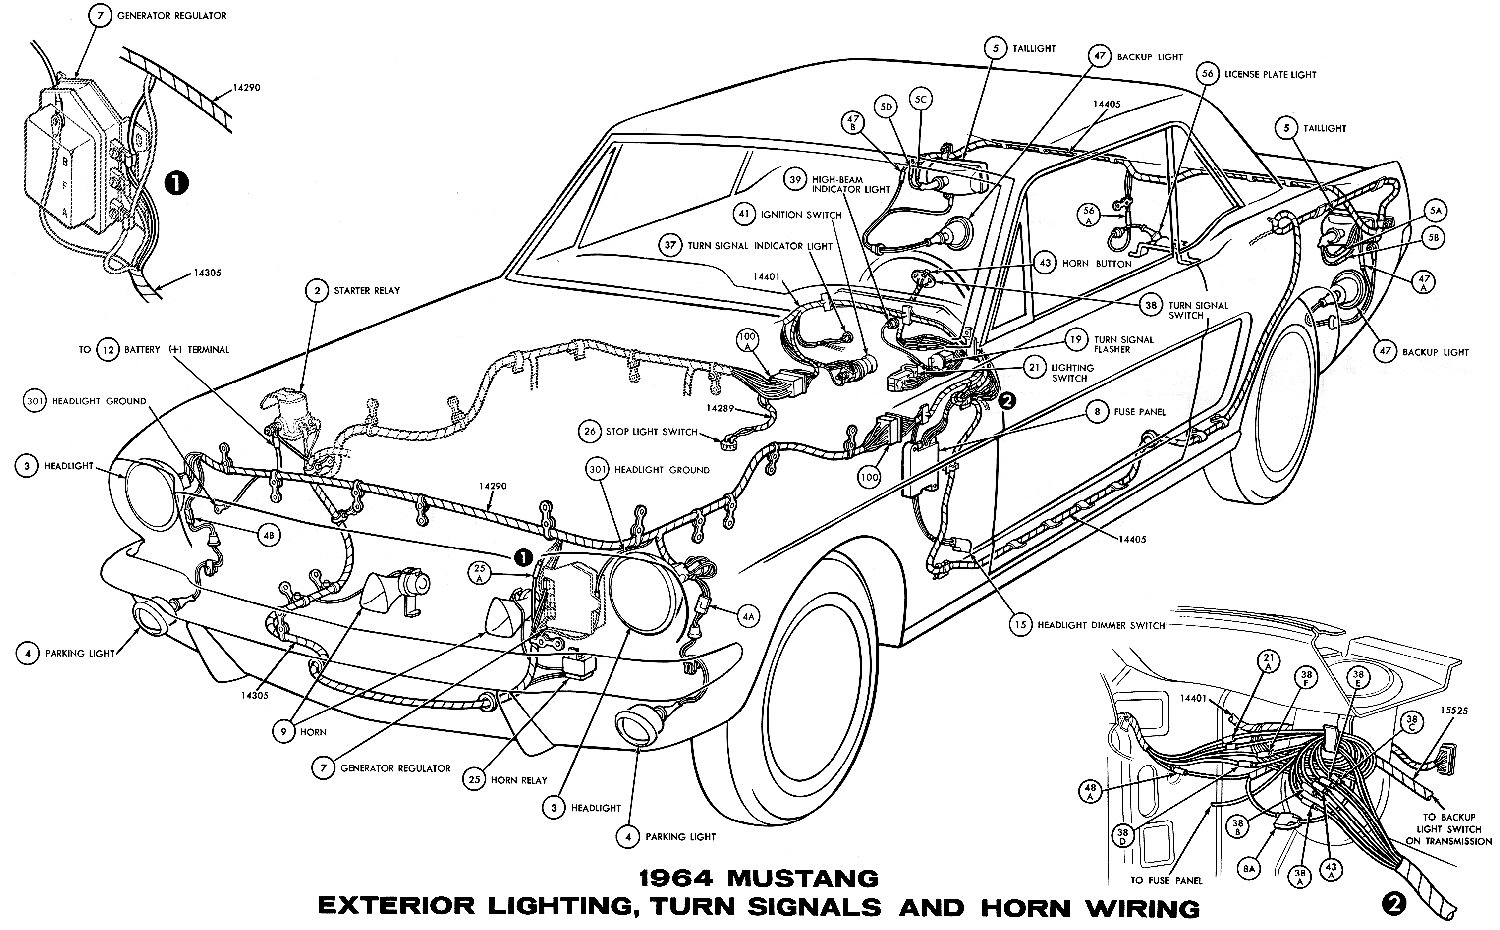 1964 Mustang Wiring Diagrams Average Joe Restoration Ford Alternator Regulator Sm1964h